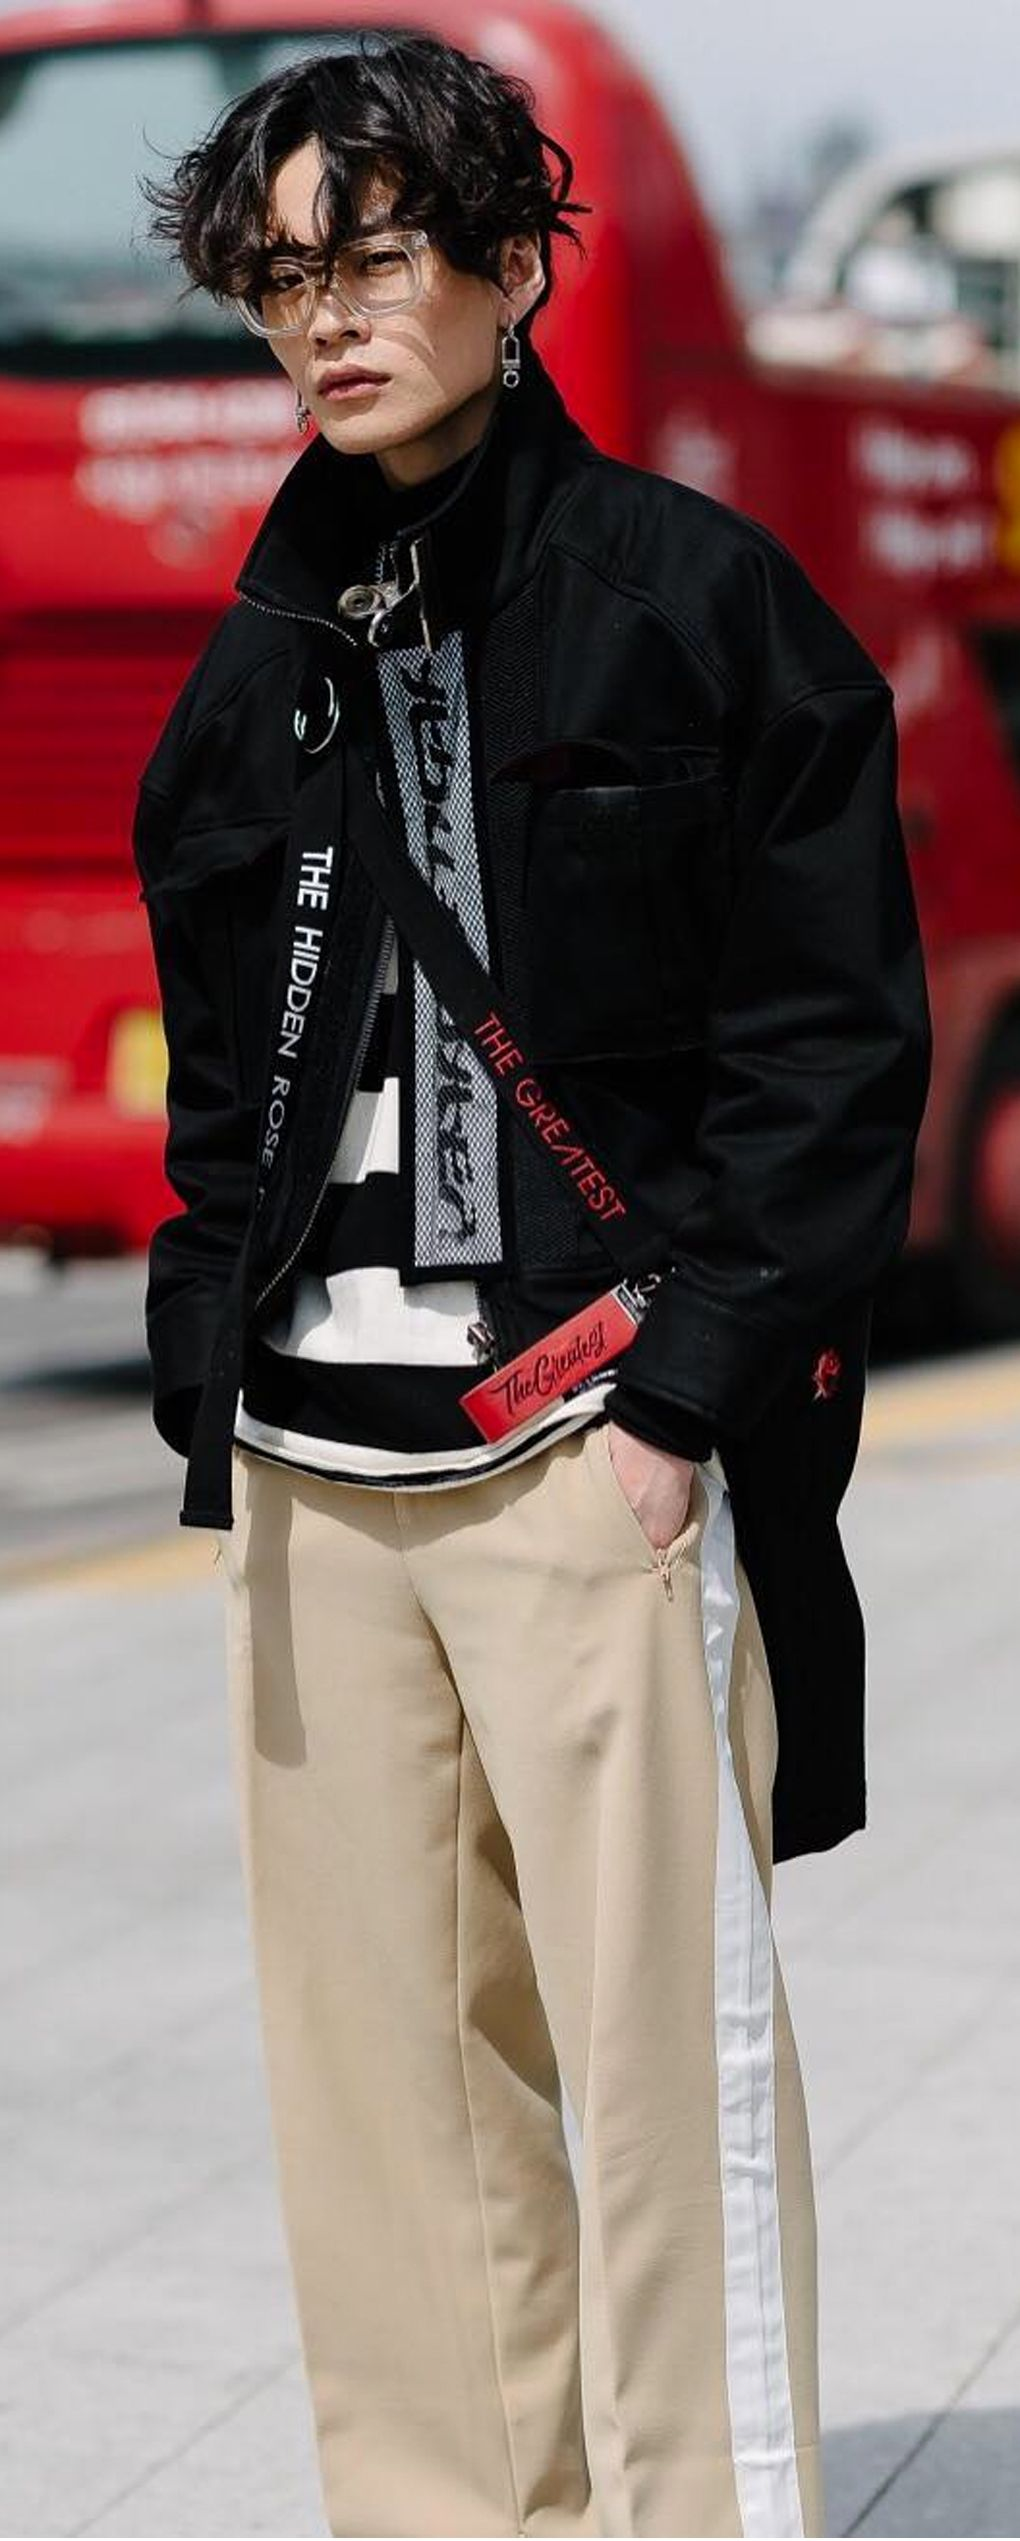 Seoul has become a fashionuand streetstyleucapital in its own right